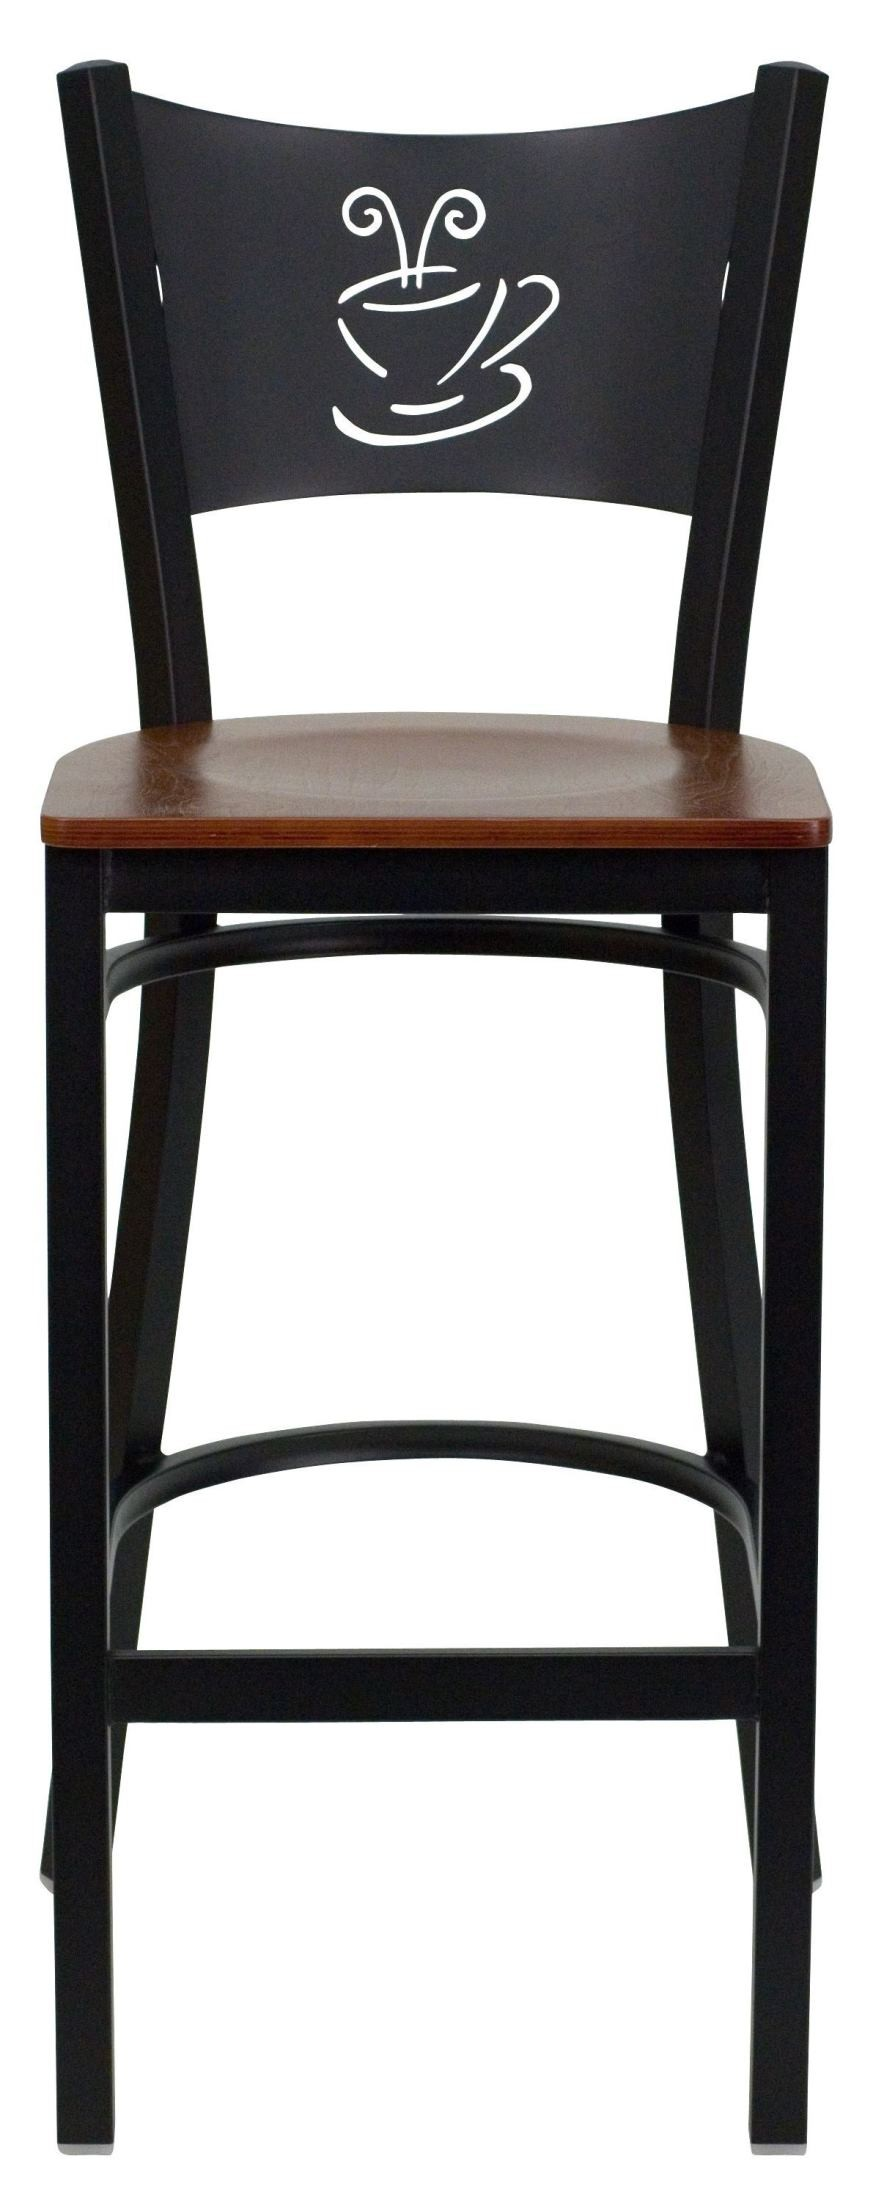 Hercules Series Black Coffee Metal Cherry Wood Restaurant  : xu dg 60114 cof bar chyw gginset3 from colemanfurniture.com size 884 x 2200 jpeg 180kB